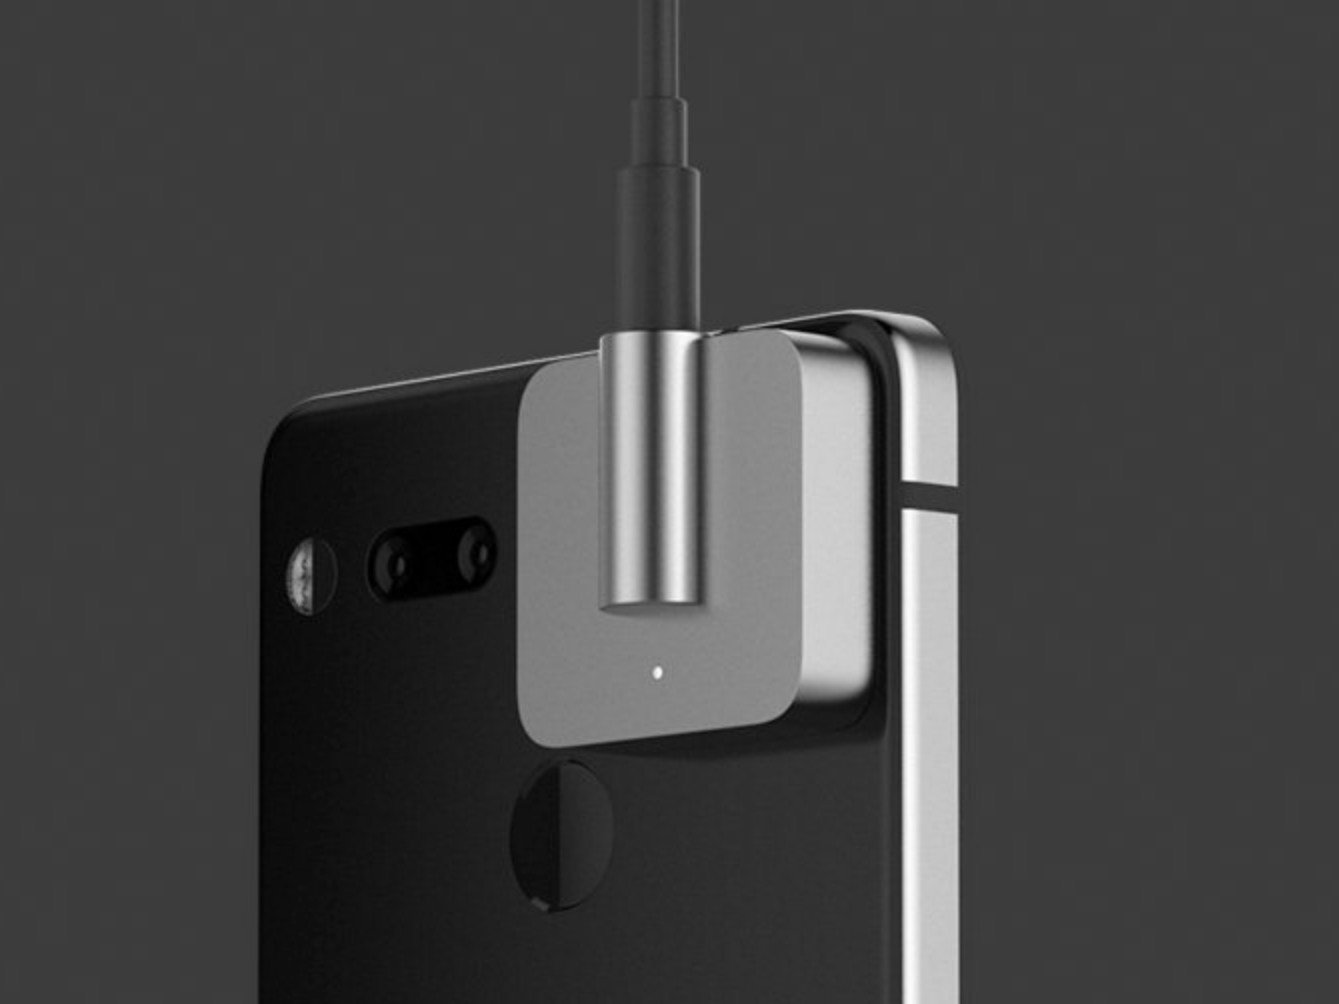 medium resolution of similar to the 360 camera this headphone jack adapter snaps onto the back of the essential phone using its two pin connection system and strong magnets